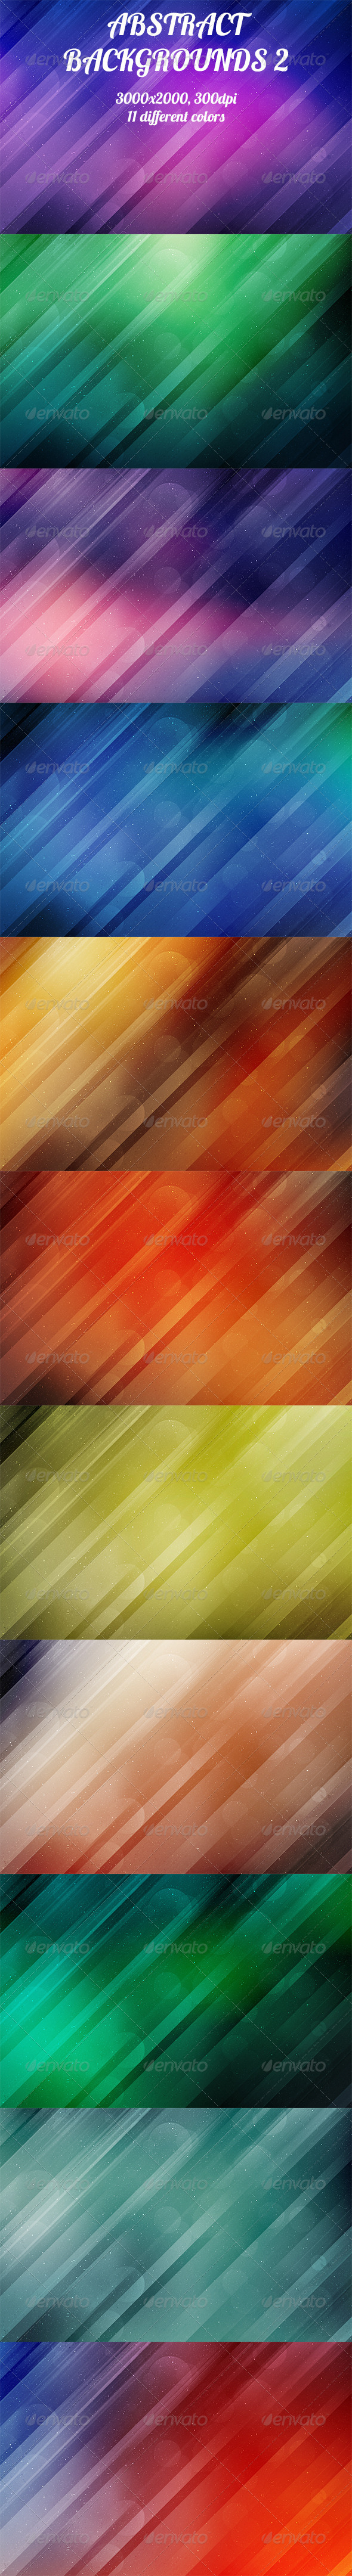 GraphicRiver Abstract Backgrounds 2 8328661